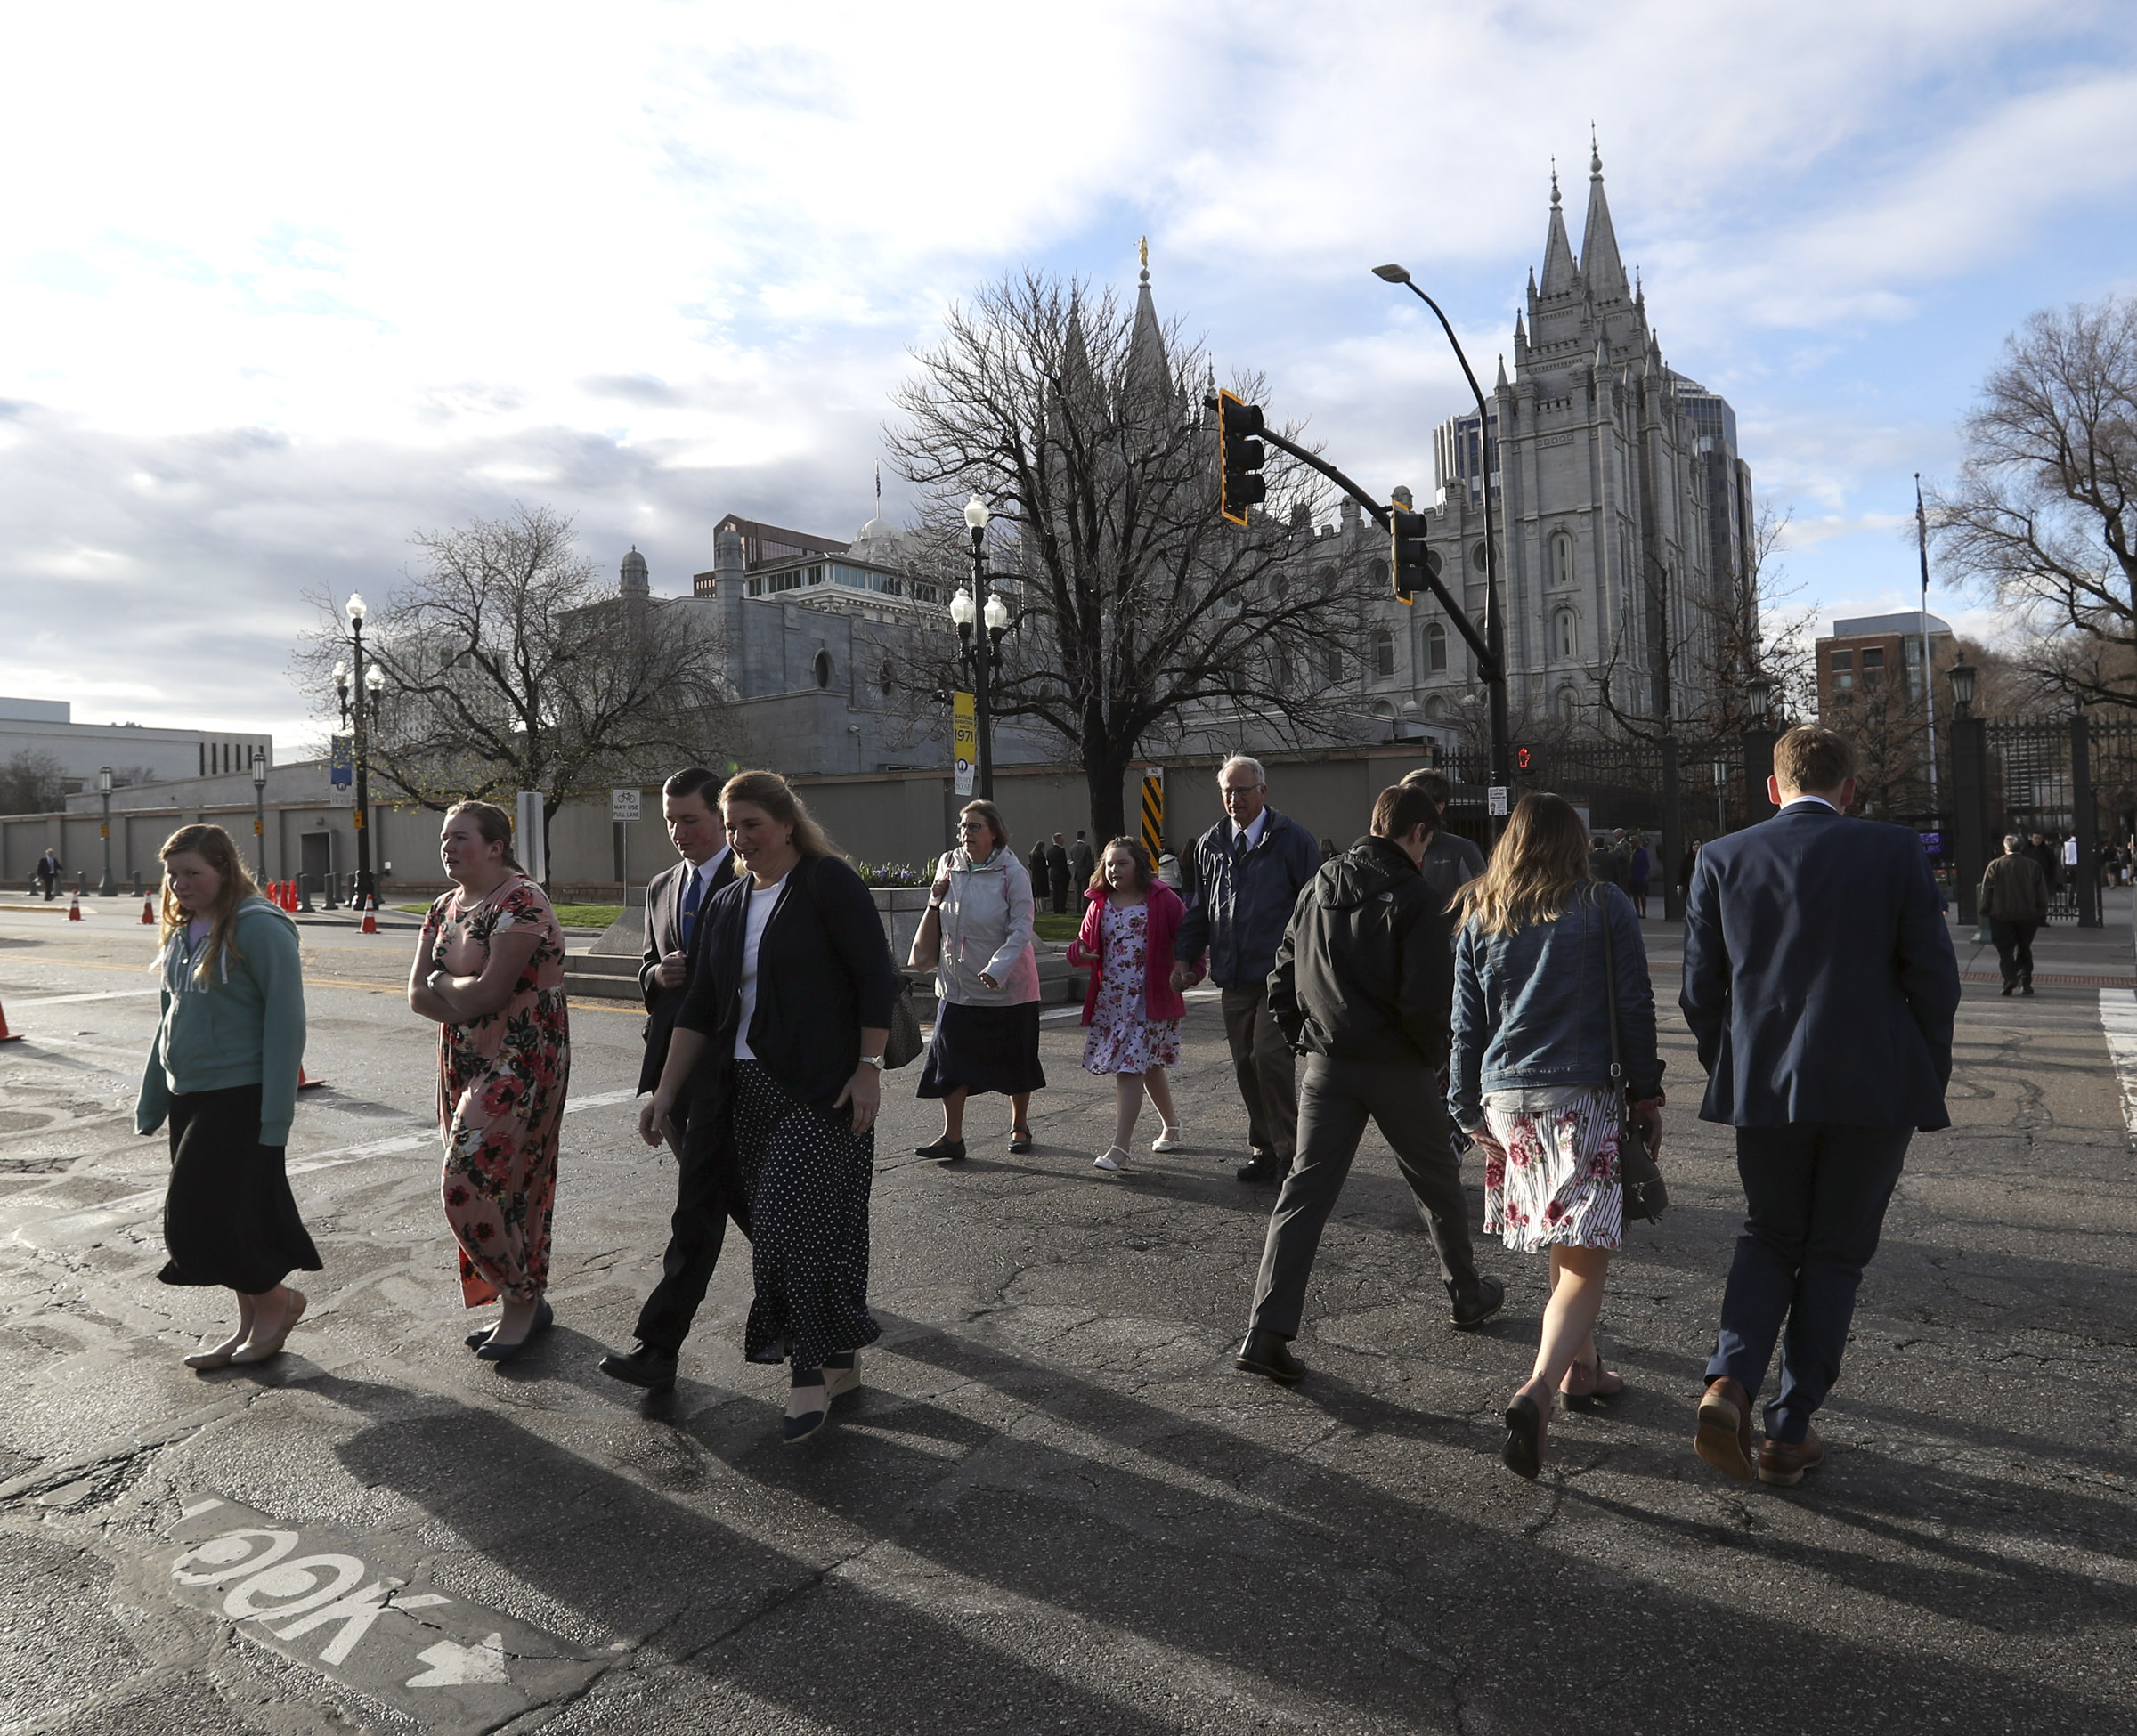 Latter-day Saints arrive at the Conference Center before the Saturday morning session of the 189th Annual General Conference of The Church of Jesus Christ of Latter-day Saints in Salt Lake City on Saturday, April 6, 2019.